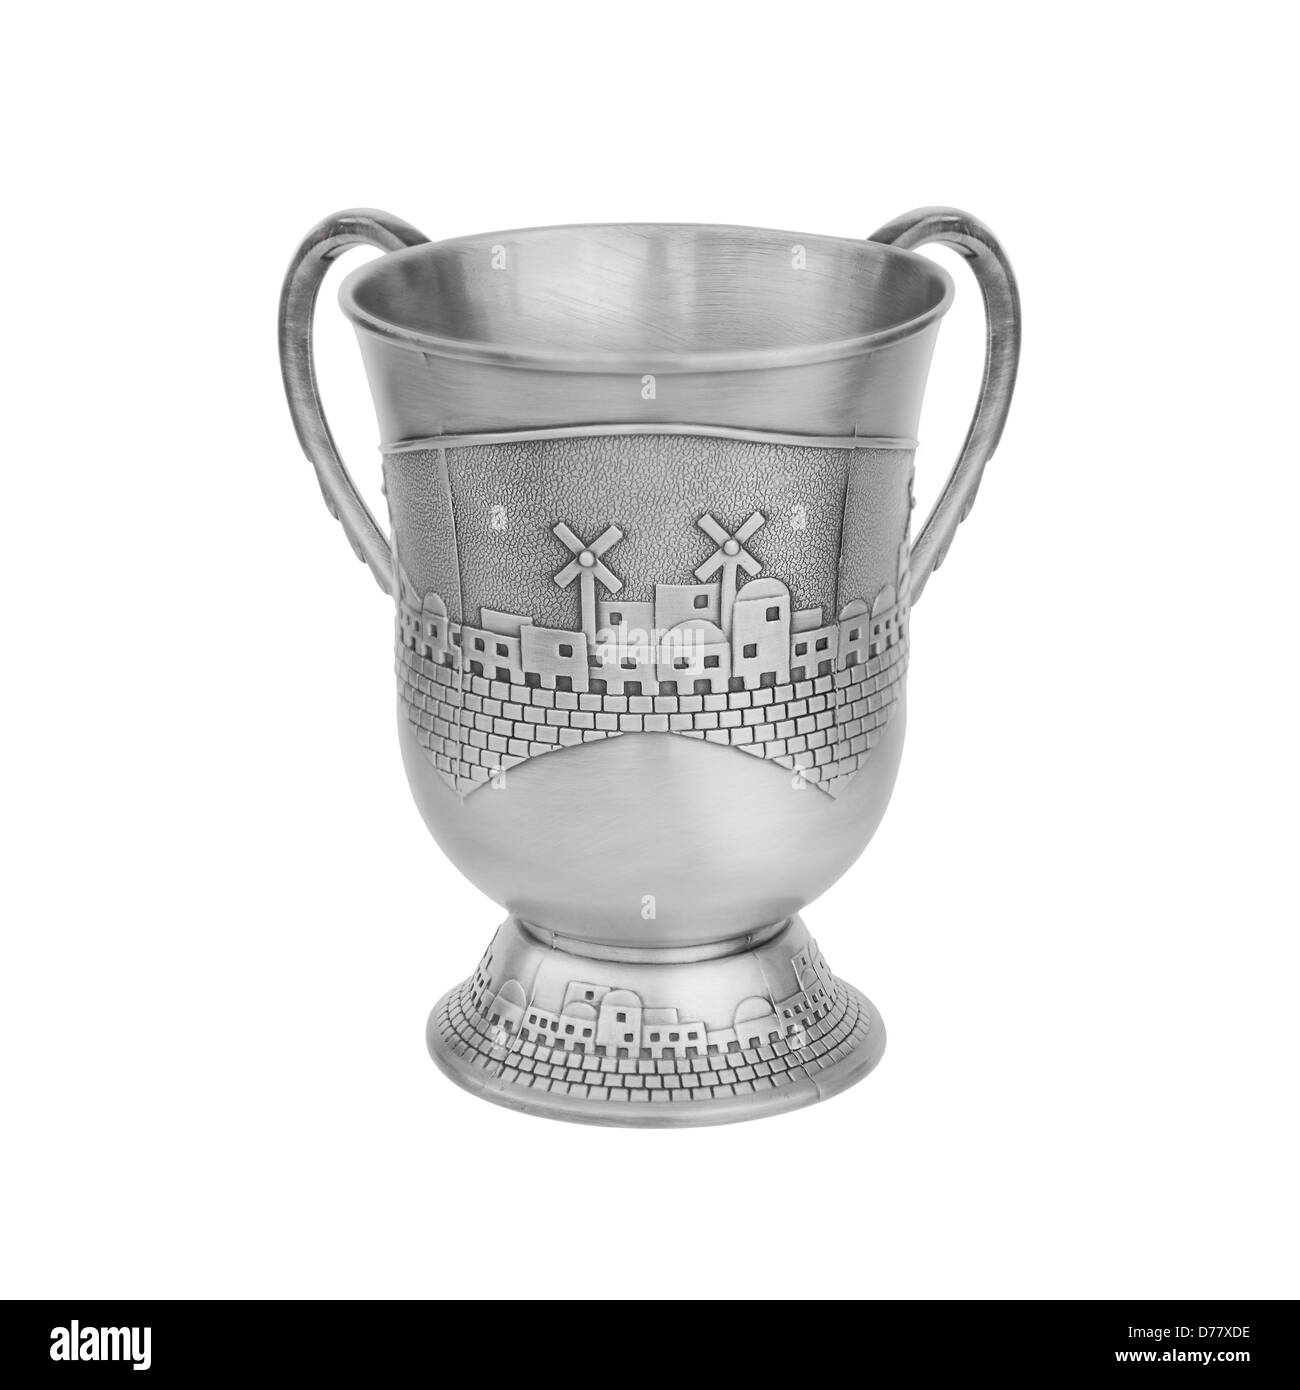 A netilat yadayim wash cup for a ritual washing hands in Judaism - Stock Image